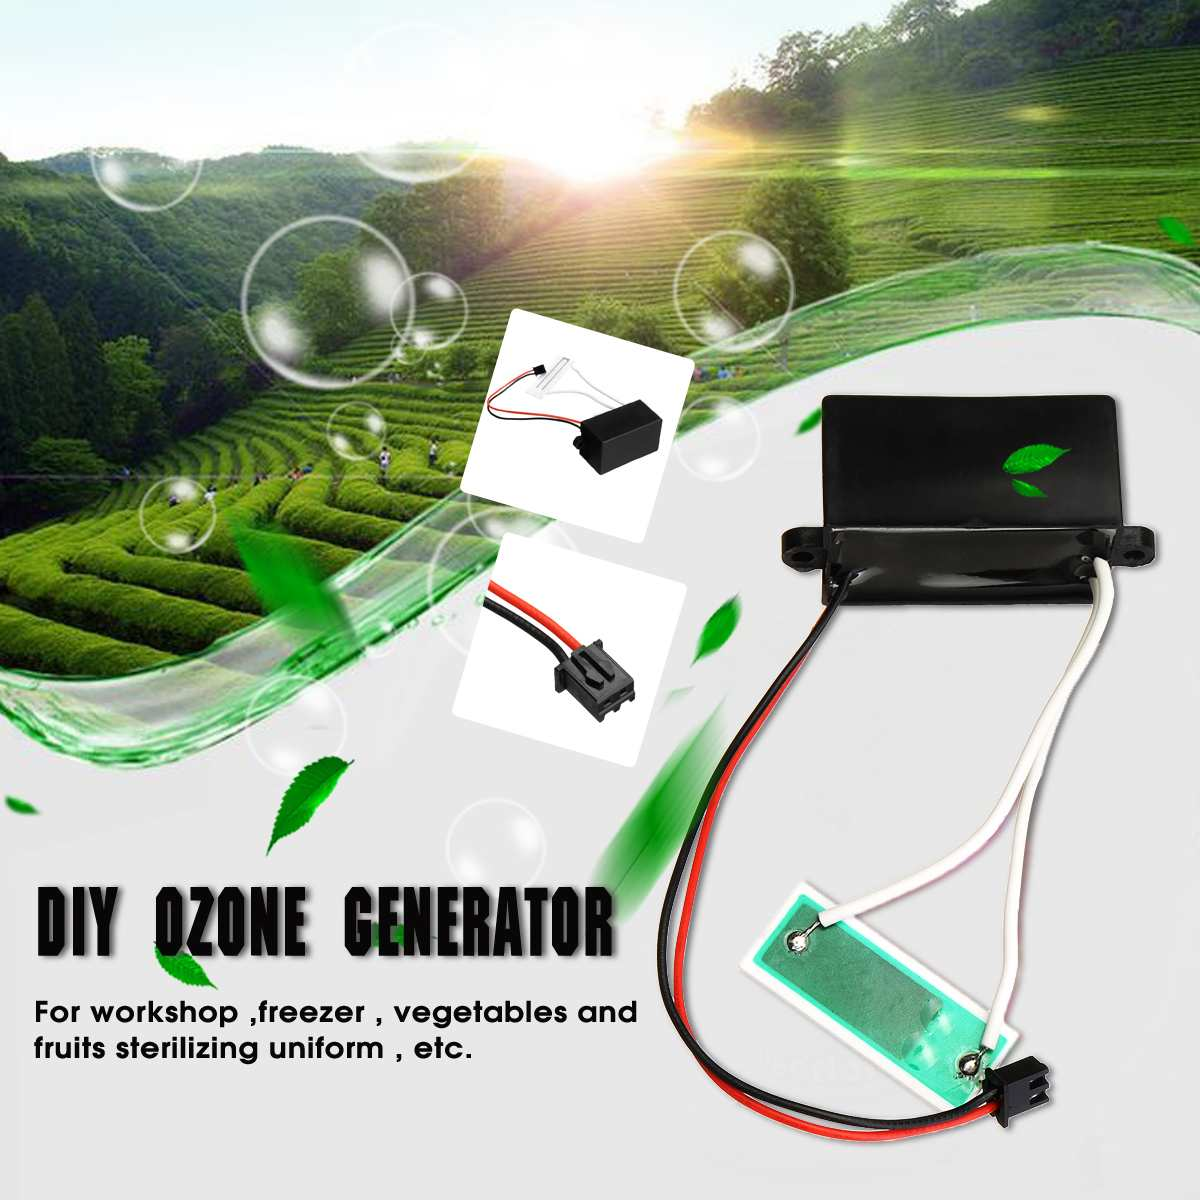 DC 12V Black DIY Ozone Generator Air Purifiers For Home Air Purification Disinfection Vegetable Fruit 200mg/H